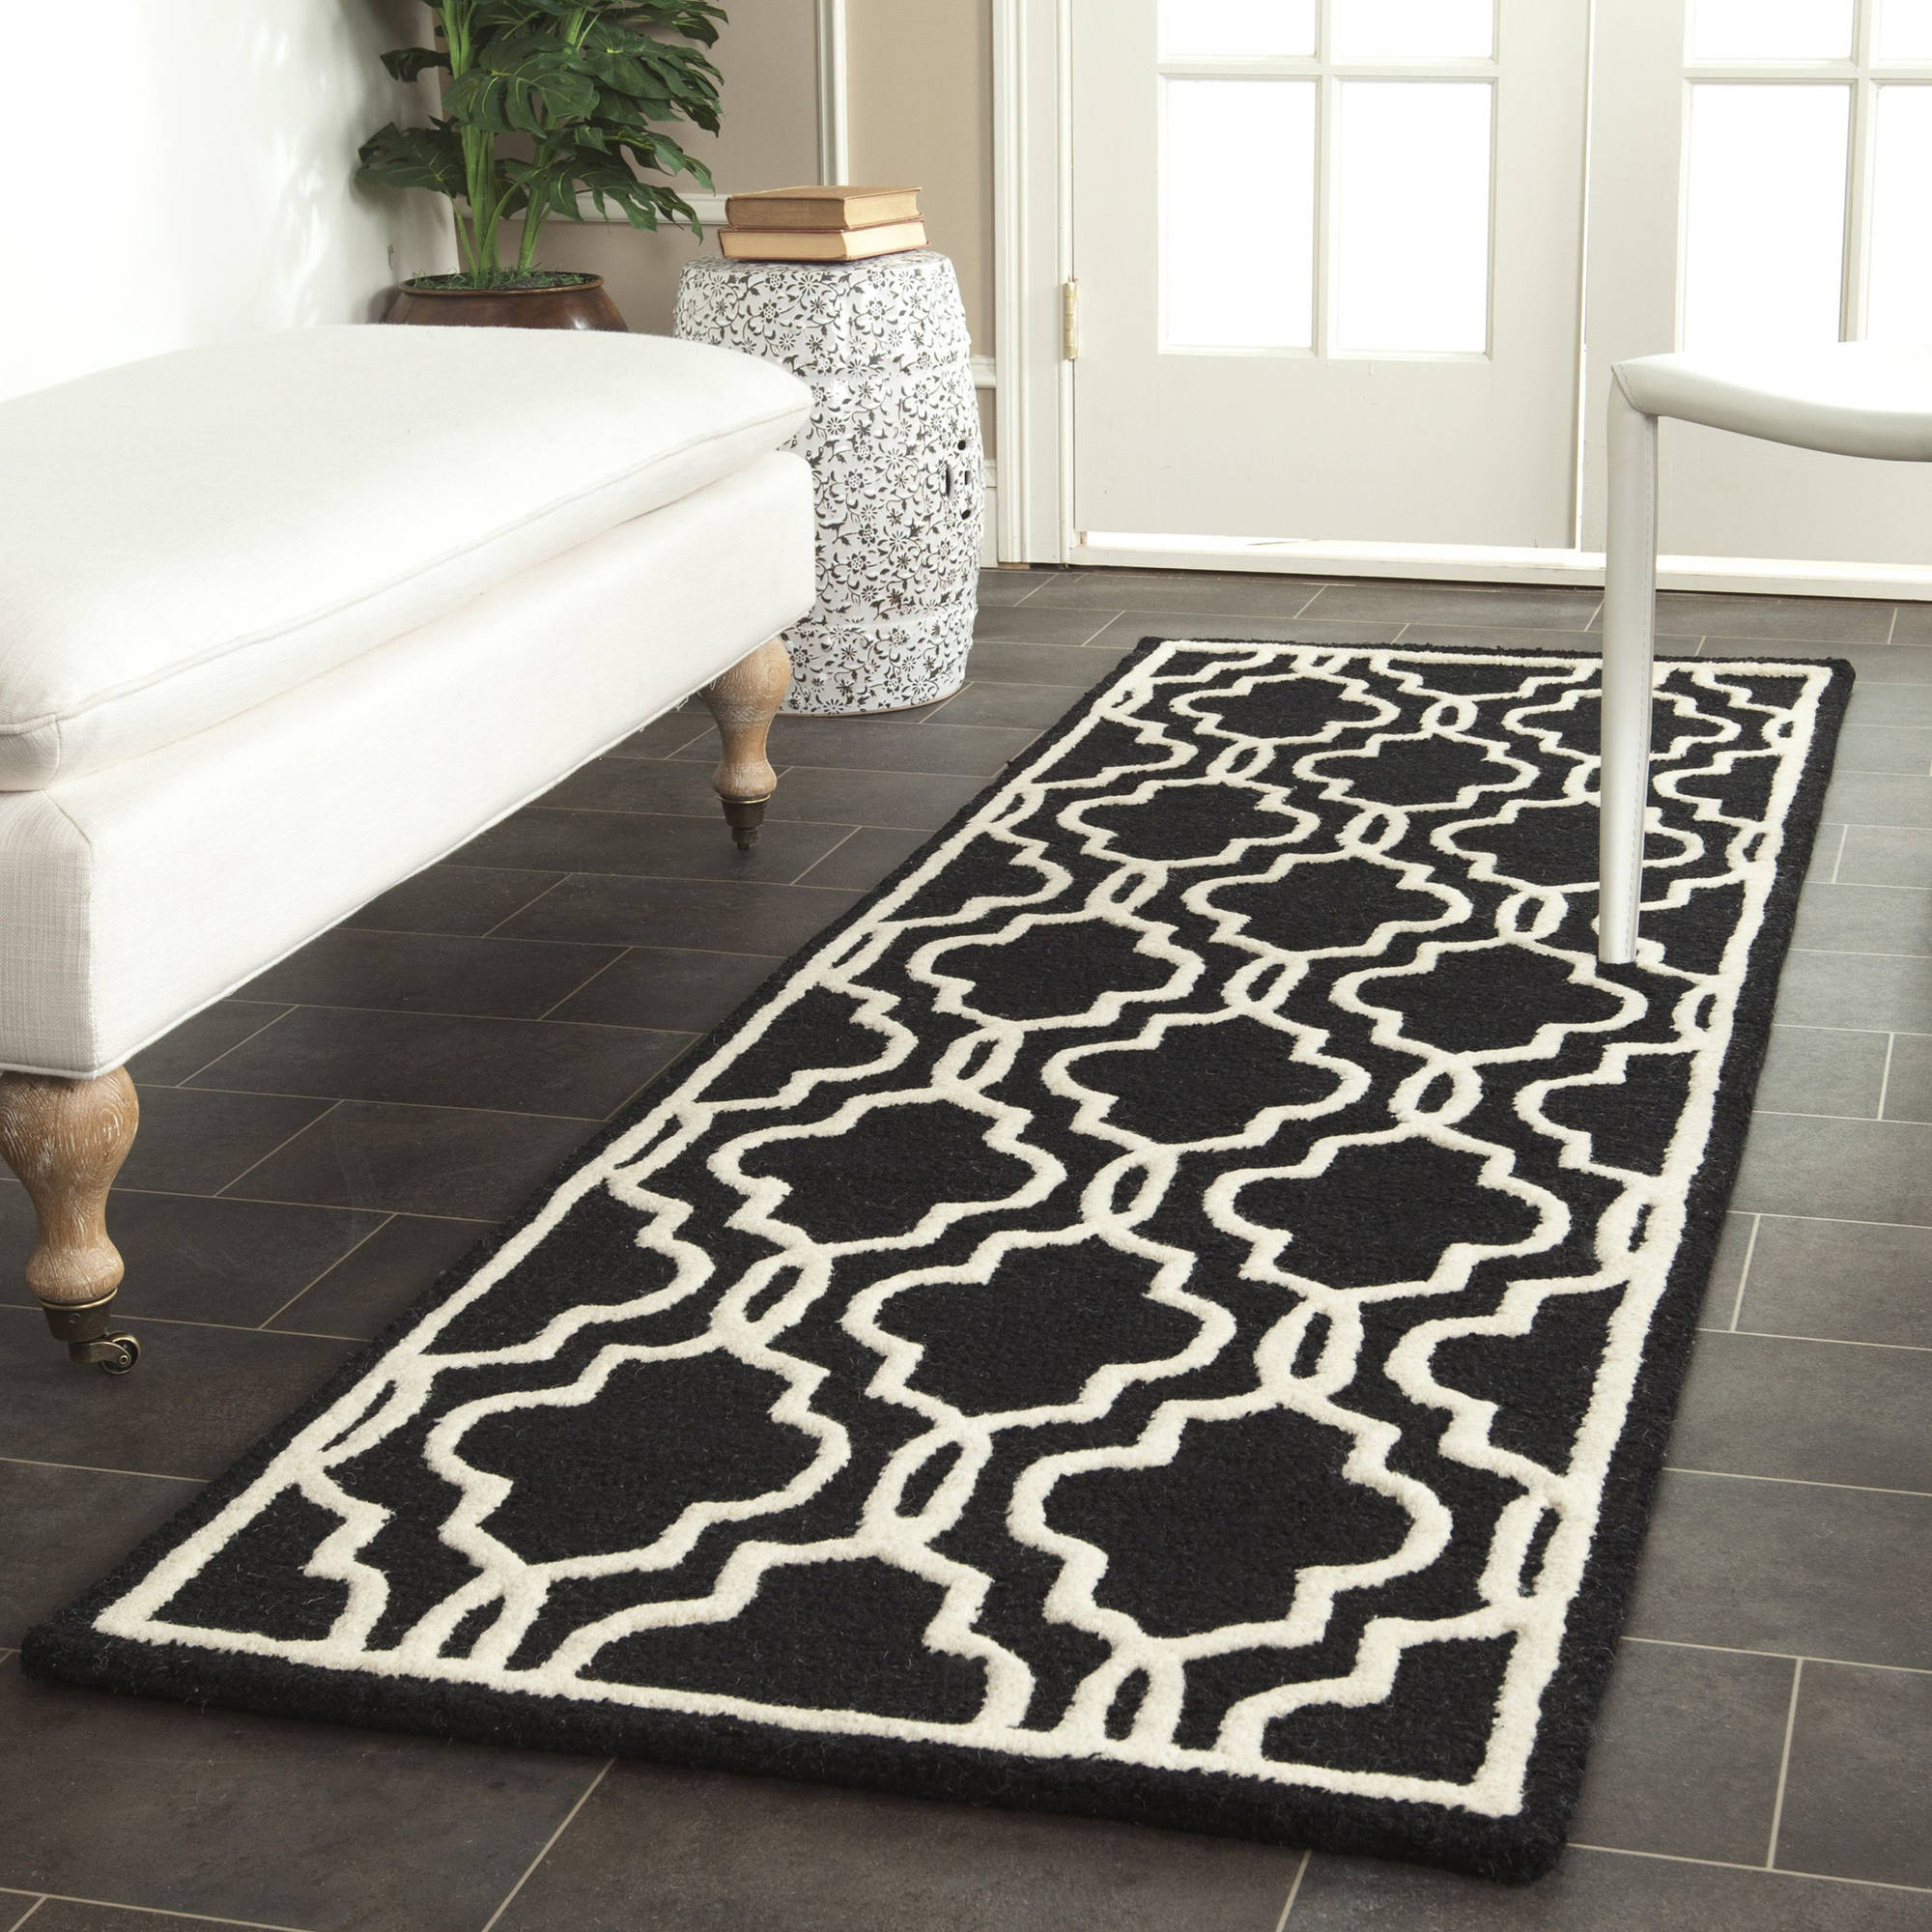 Safavieh Cambridge Kyle Hand-Tufted Wool Runner Rug